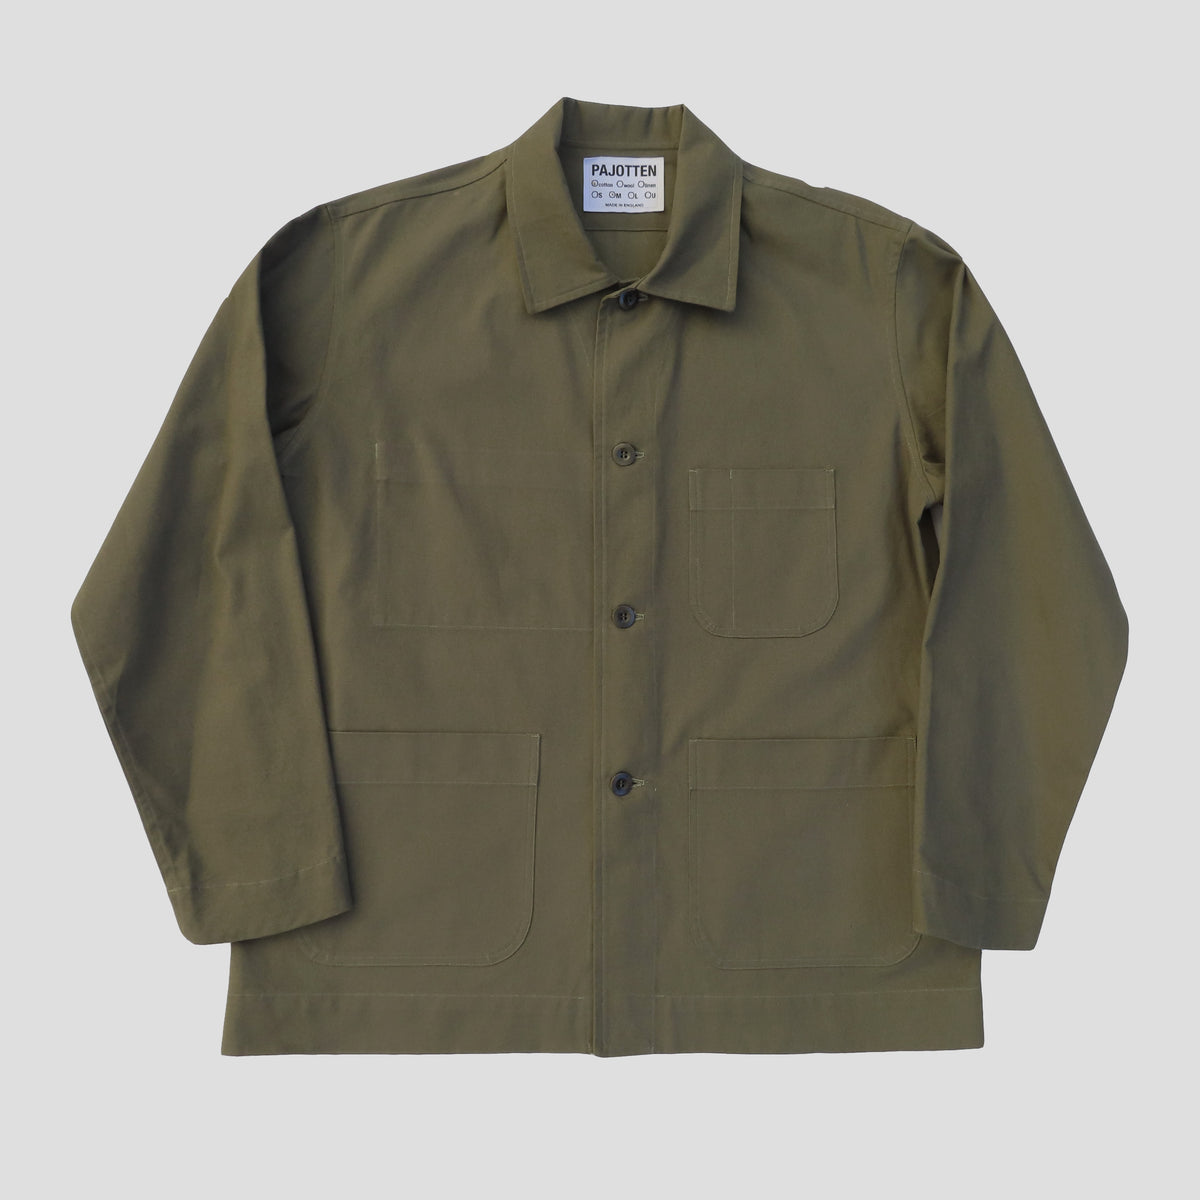 front view of a mens sage green traditional chore jacket with three outer pockets made sustainably in the UK